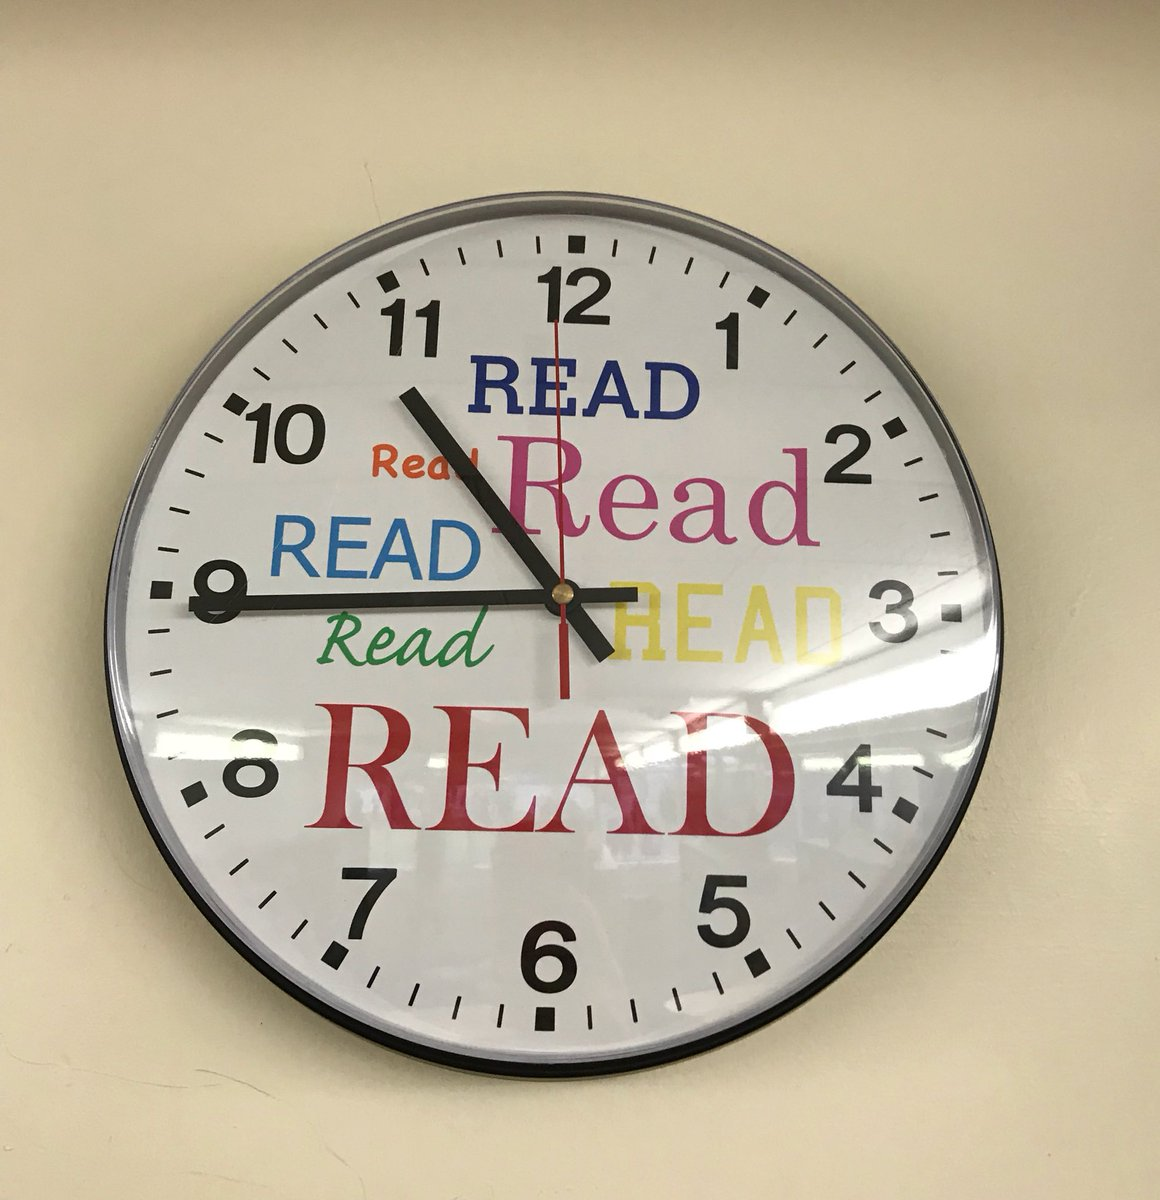 Steve Cole On Twitter Clock On The Wall Of School Library Im